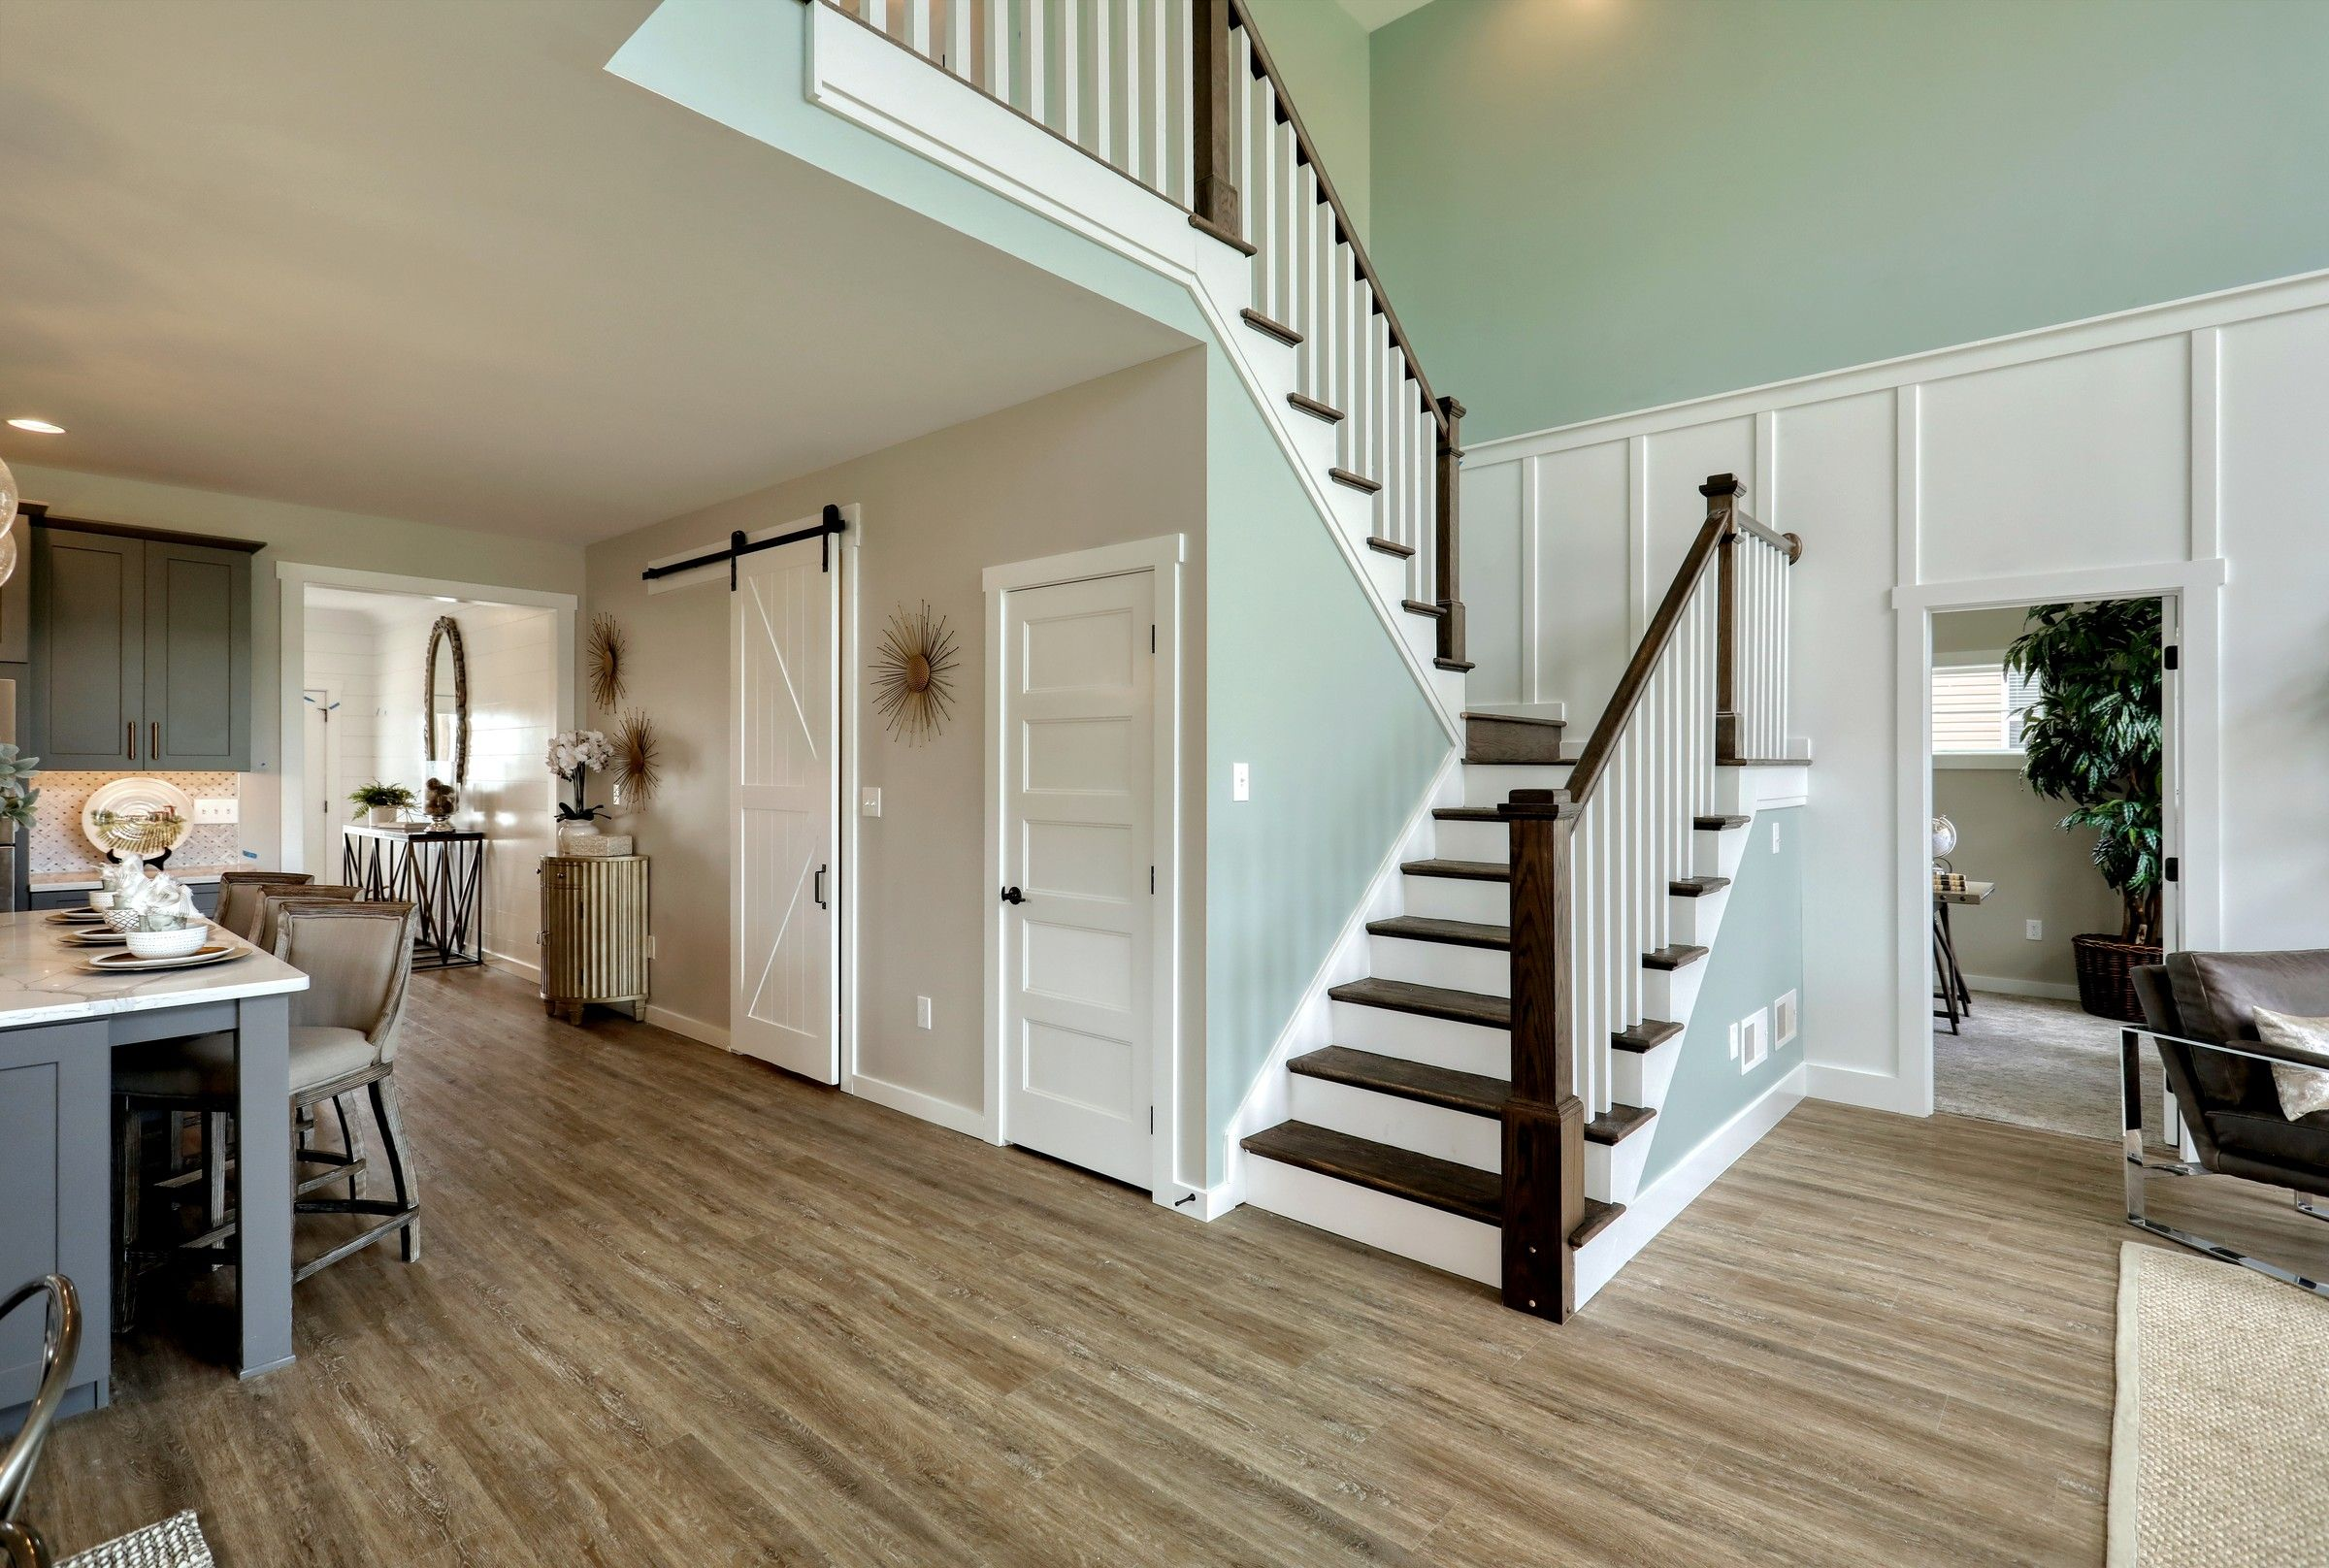 Living Area featured in the Manchester Manor By Keystone Custom Homes in Lancaster, PA